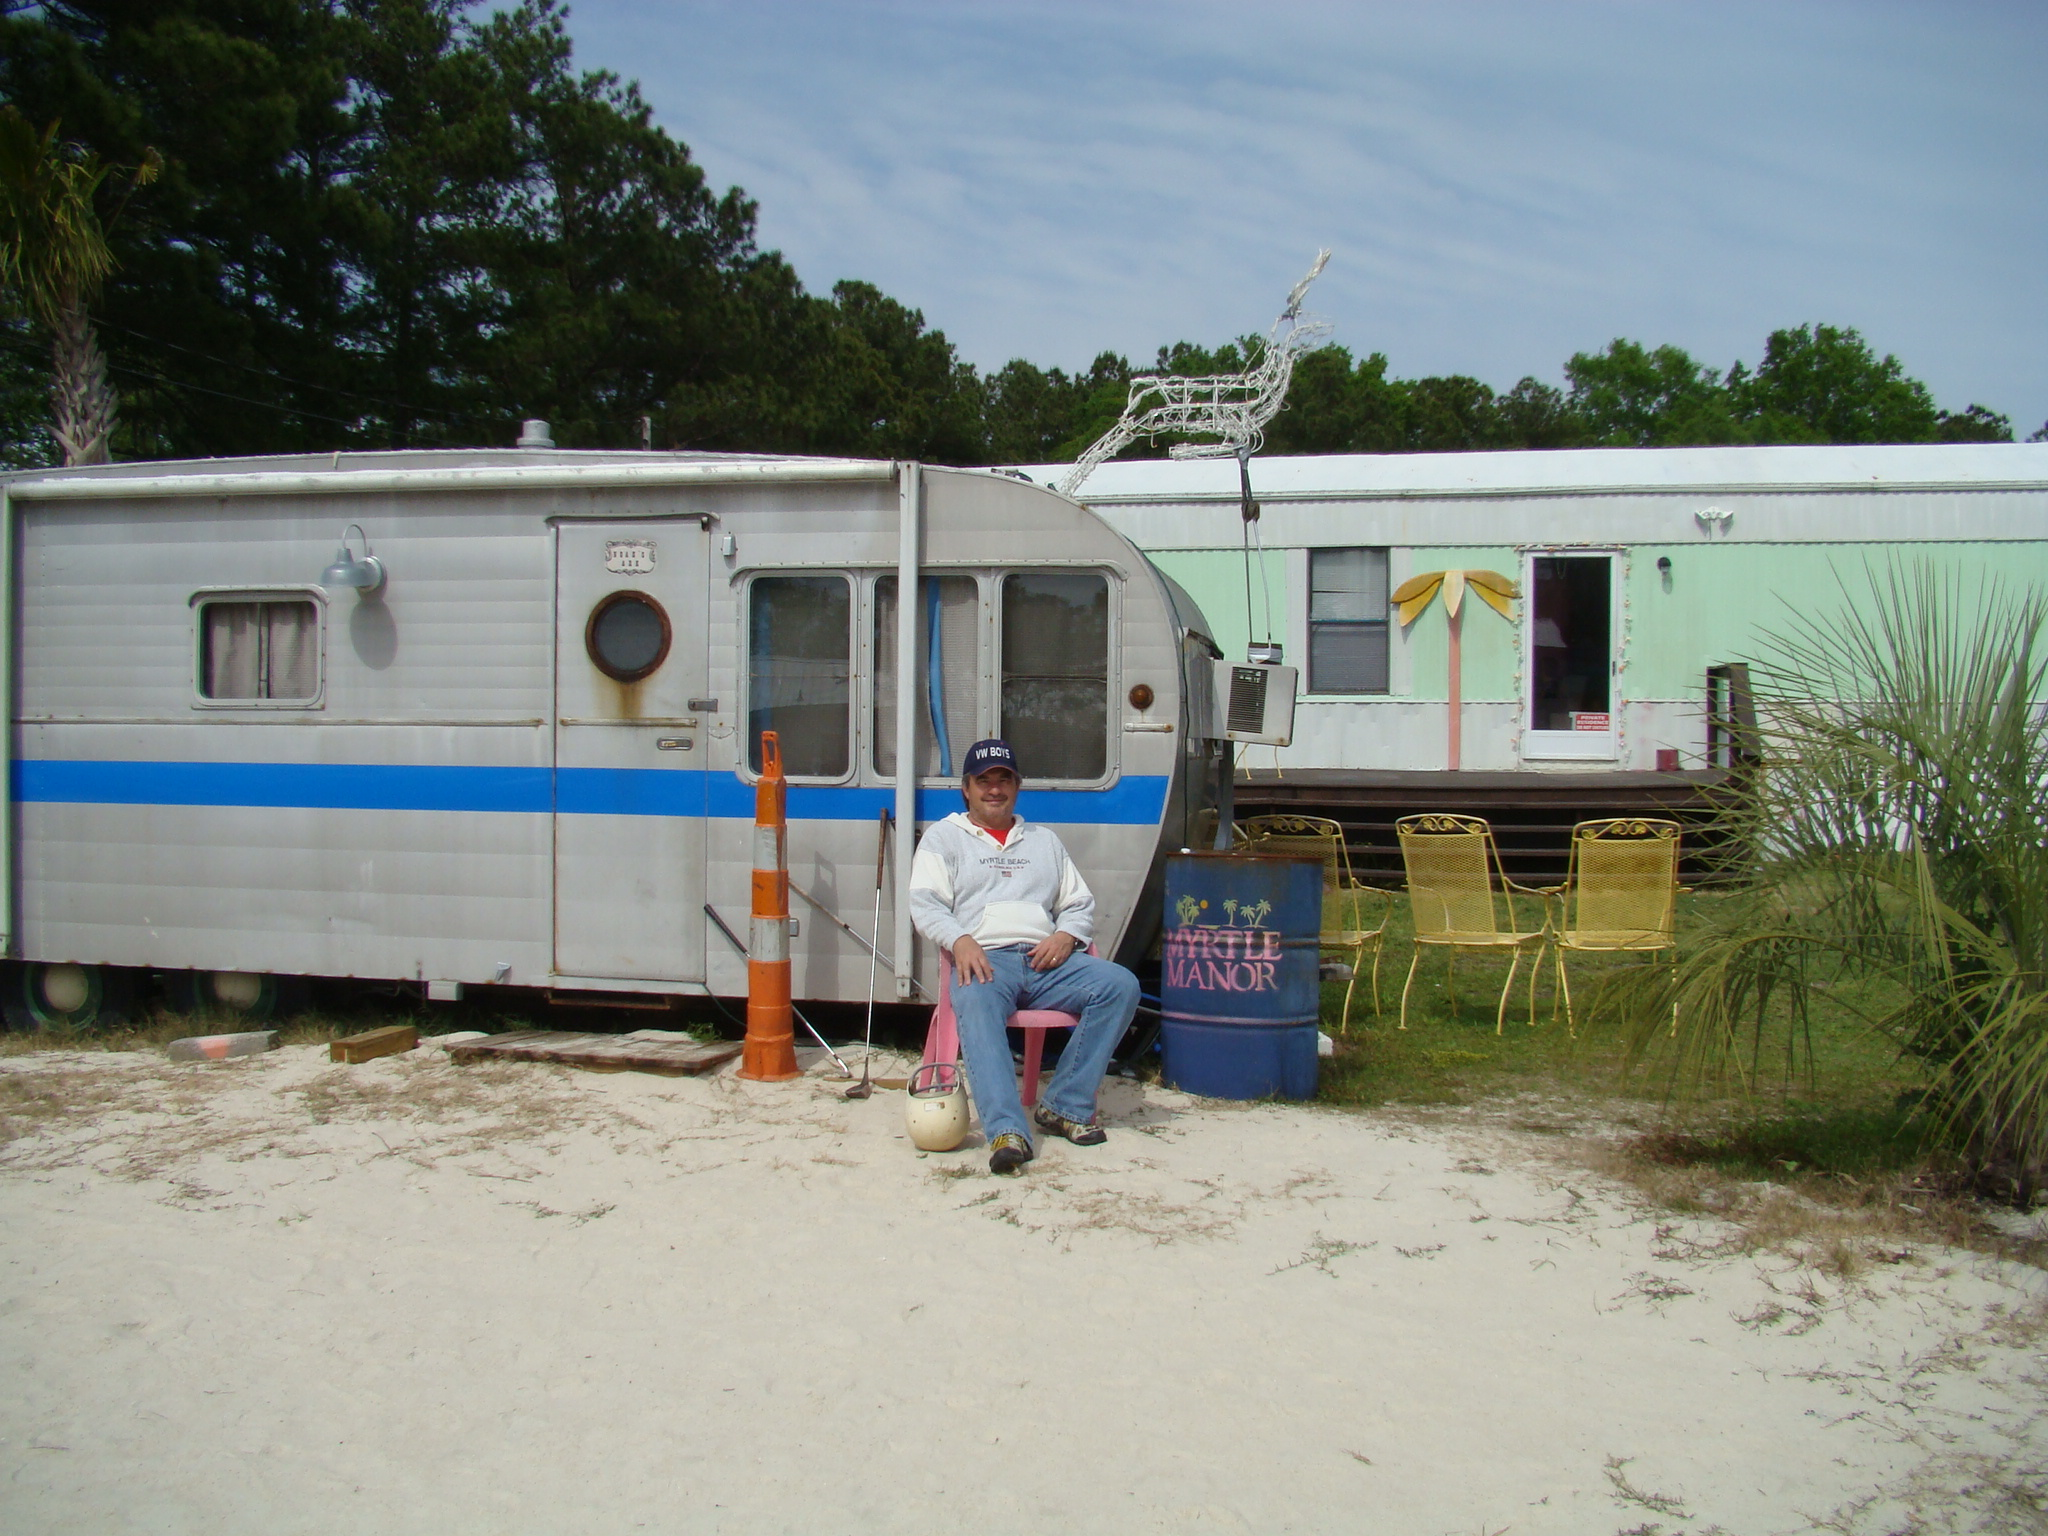 Tim White at Myrtle Manor 5-2013 (2).JPG